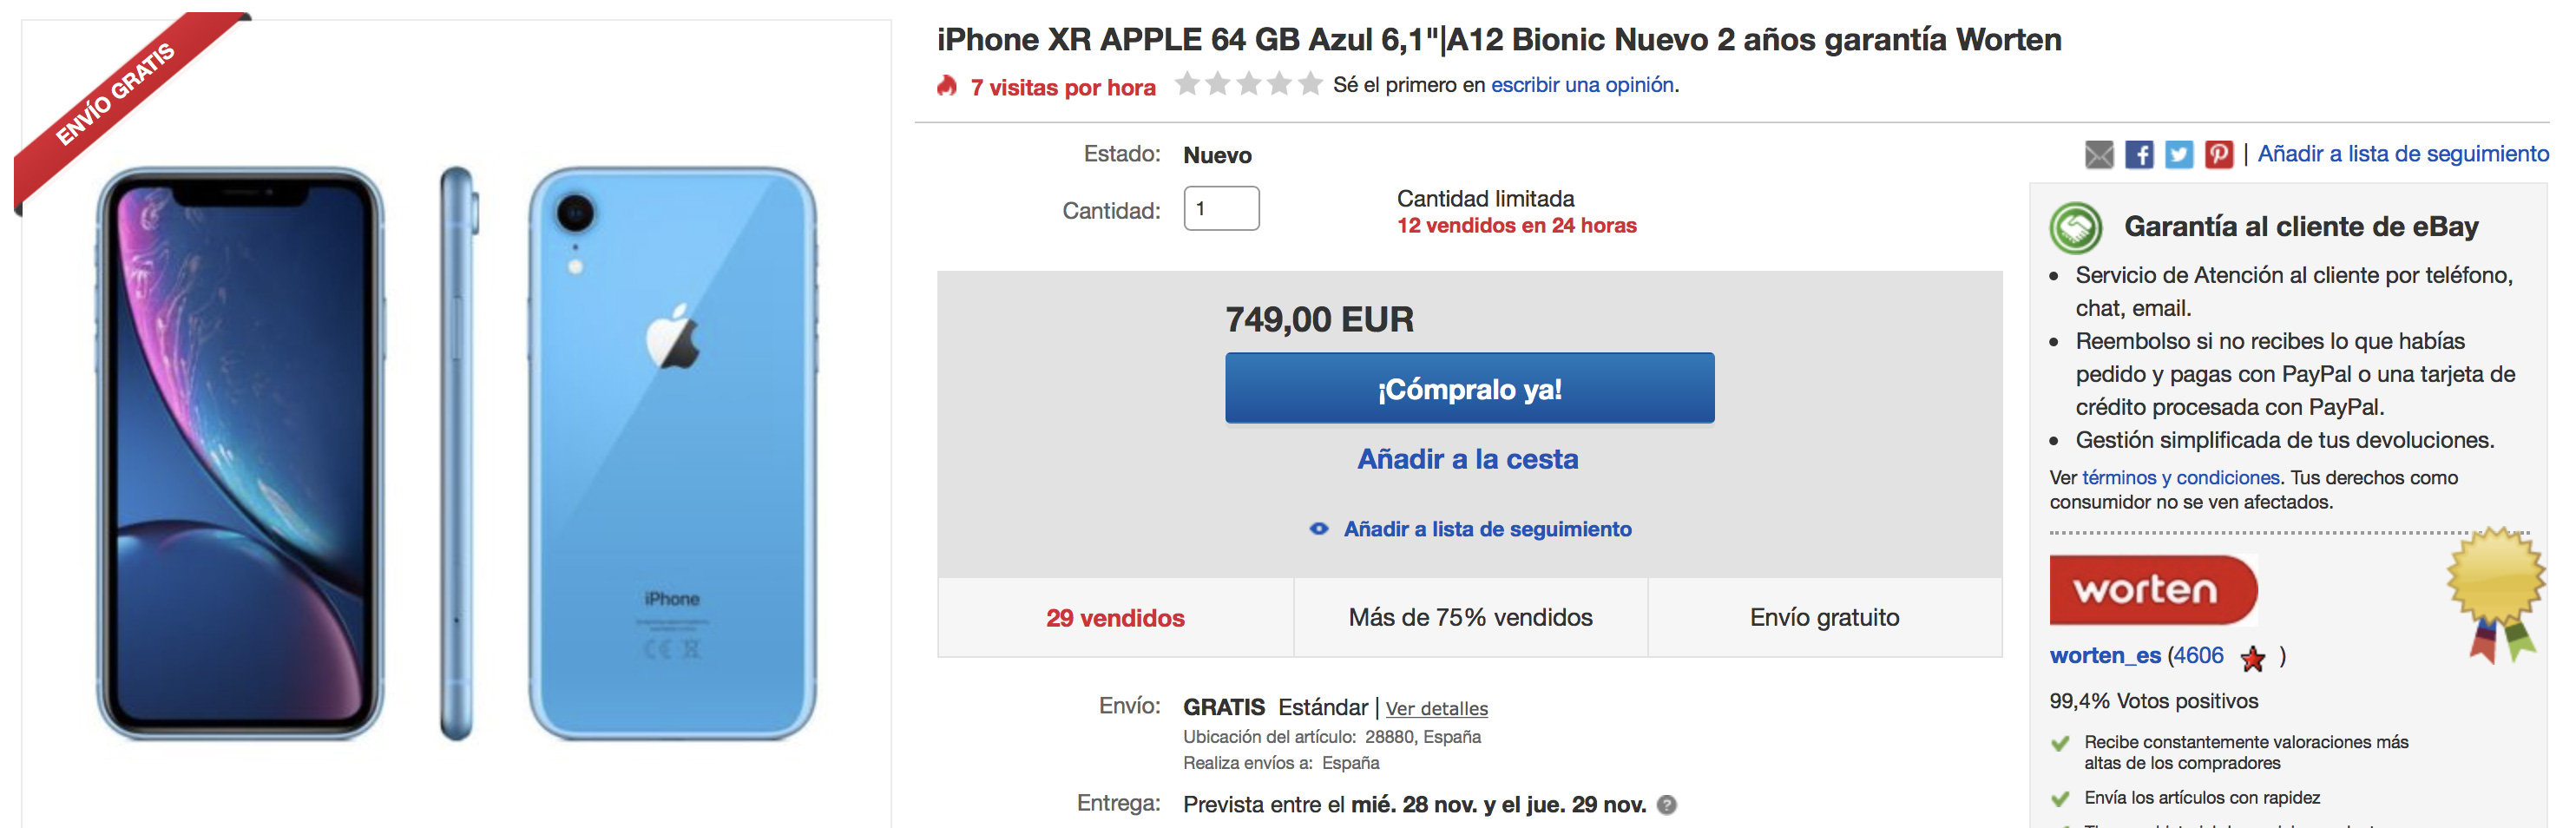 iPhone XR en eBay